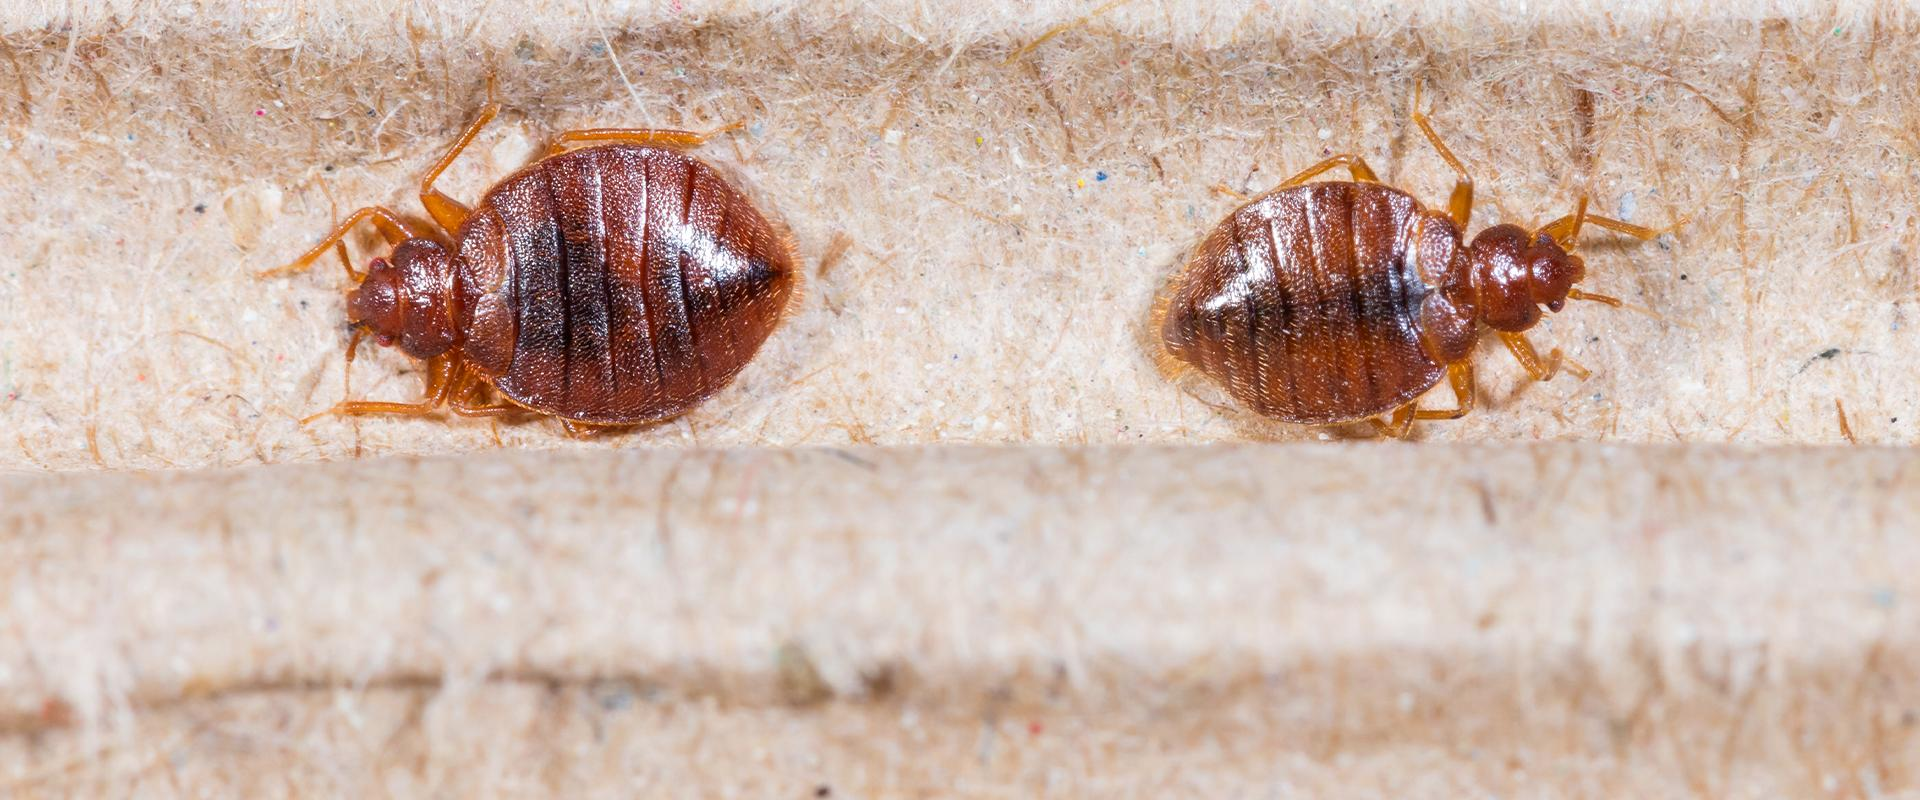 bedbugs on a mattress frame